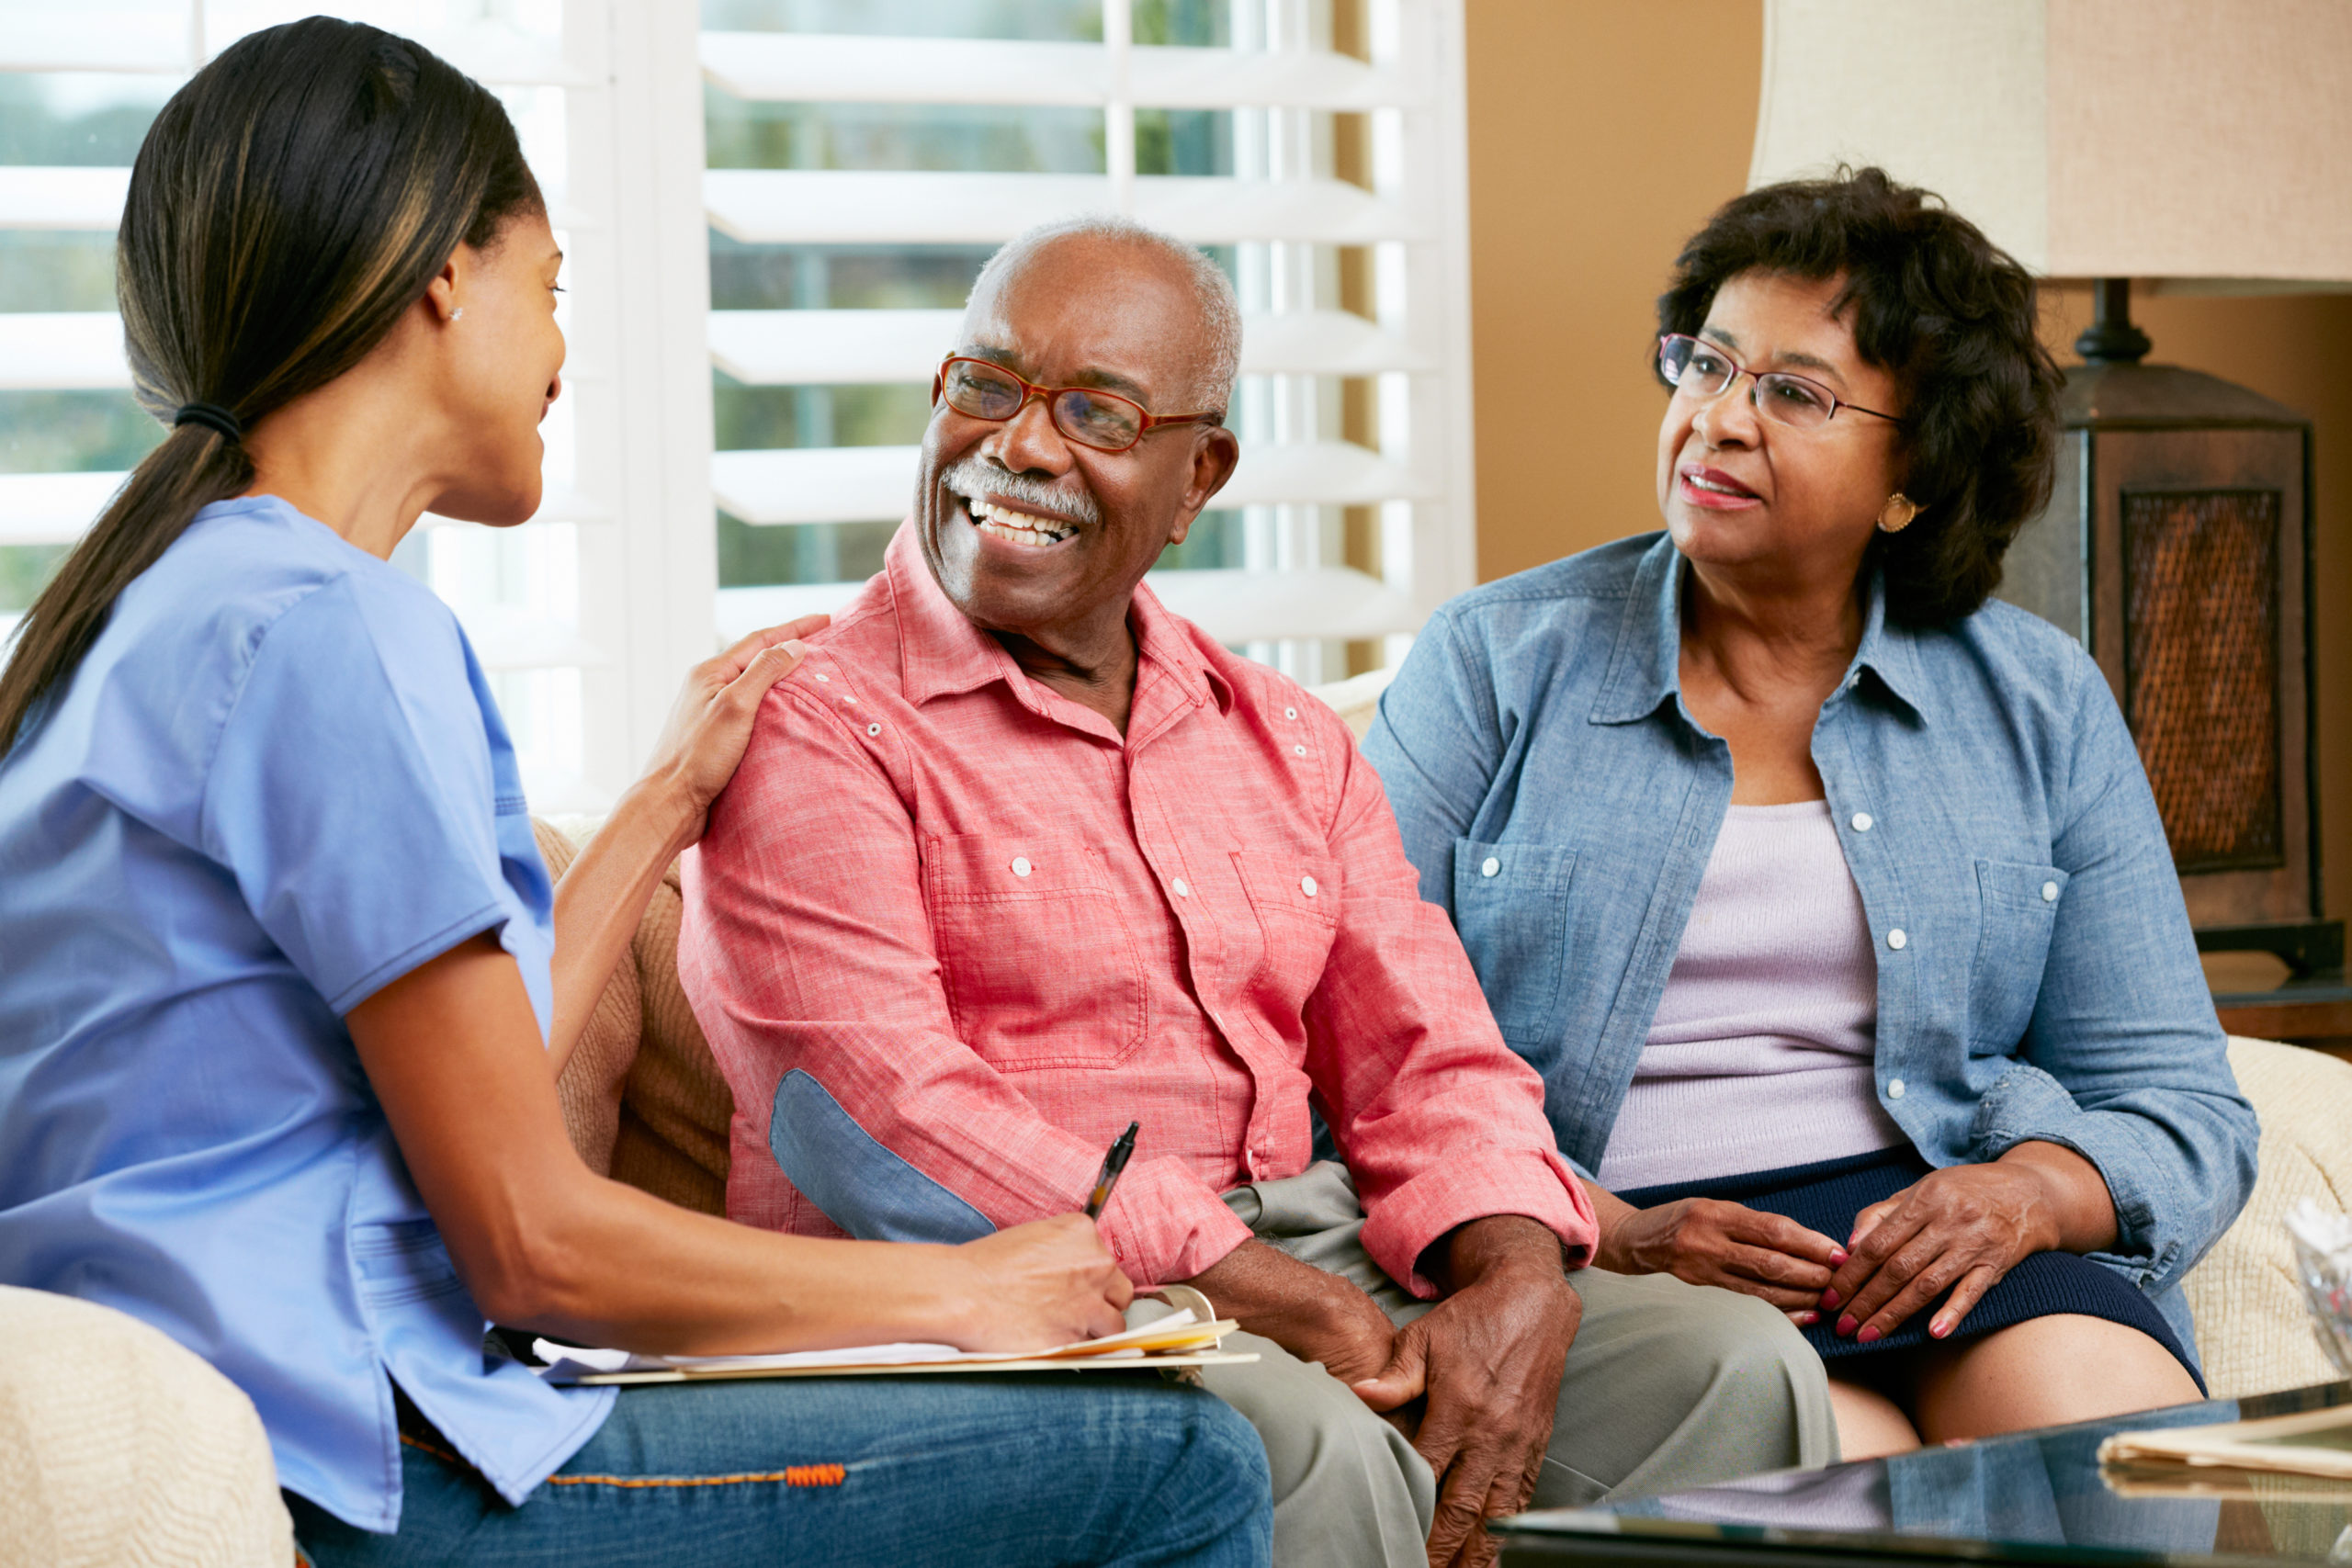 Nurse Making Notes During Home Visit With Senior Couple Smiling.